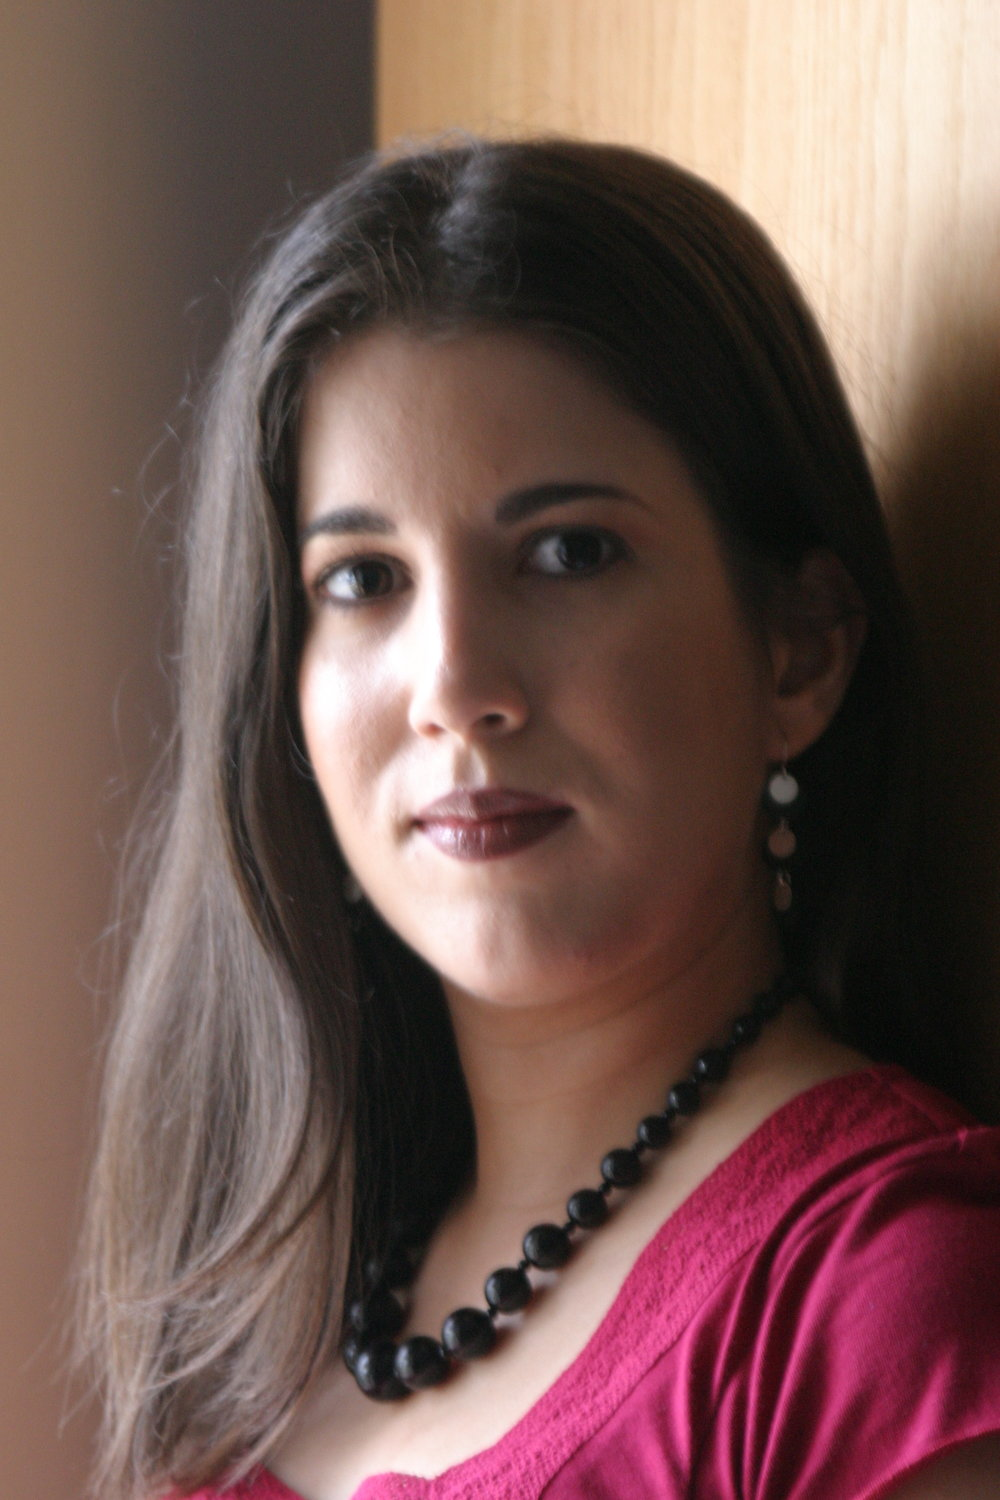 "Rita Maria Martinez  loves all things  Jane Eyre.  Her poetry collection,  The Jane and Bertha in Me  (Aldrich Press, 2016), celebrates Charlotte Brontë's classic novel.  The Jane and Bertha in Me  is taught in a course titled  Remaking Jane Eyre  at the University of Kentucky, and the poem ""St. John Rivers Pops the Question"" was nominated for a Pushcart. Martinez's poetry appears in the  Notre Dame Review ,  Ploughshares , and the  Best American Poetry Blog . Her poetry also appears in the textbook  Three Genres: The Writing of Fiction/Literary Nonfiction, Poetry and Drama.  Visit Martinez's web site at  comeonhome.org/wordpress_development/.   You can follow her on Twitter @CubanBronteite."